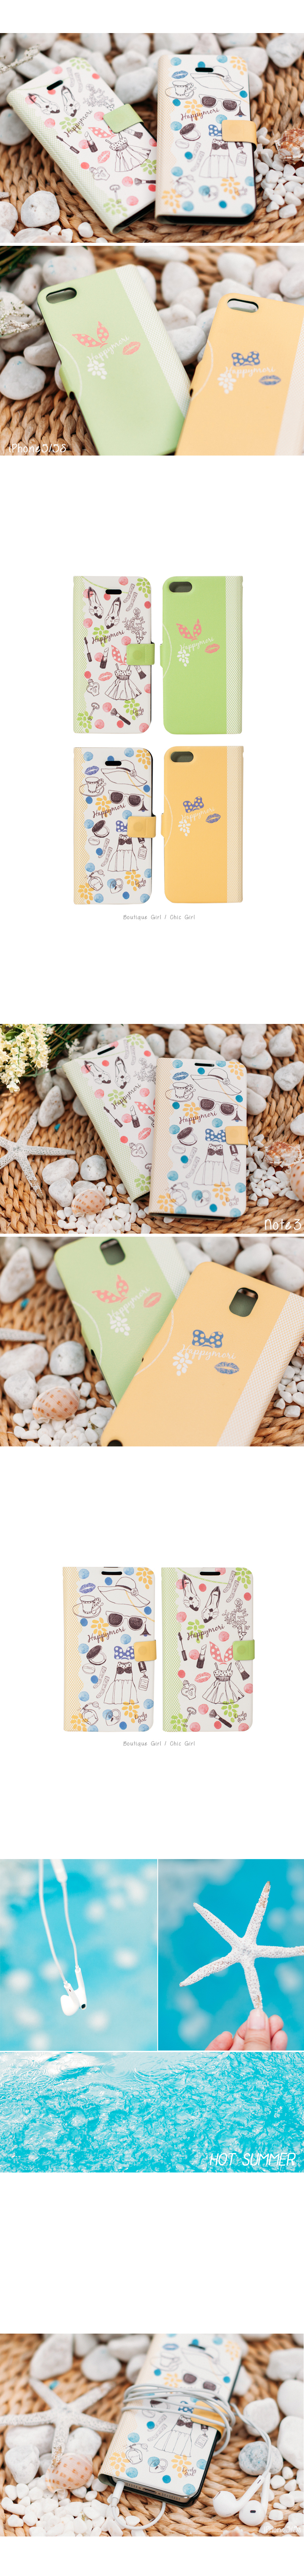 [HAPPYMORI] Flip Cover Case _ gossipgirl(iPhone4_4s,iPhone5_5s,iPhone6_6s)